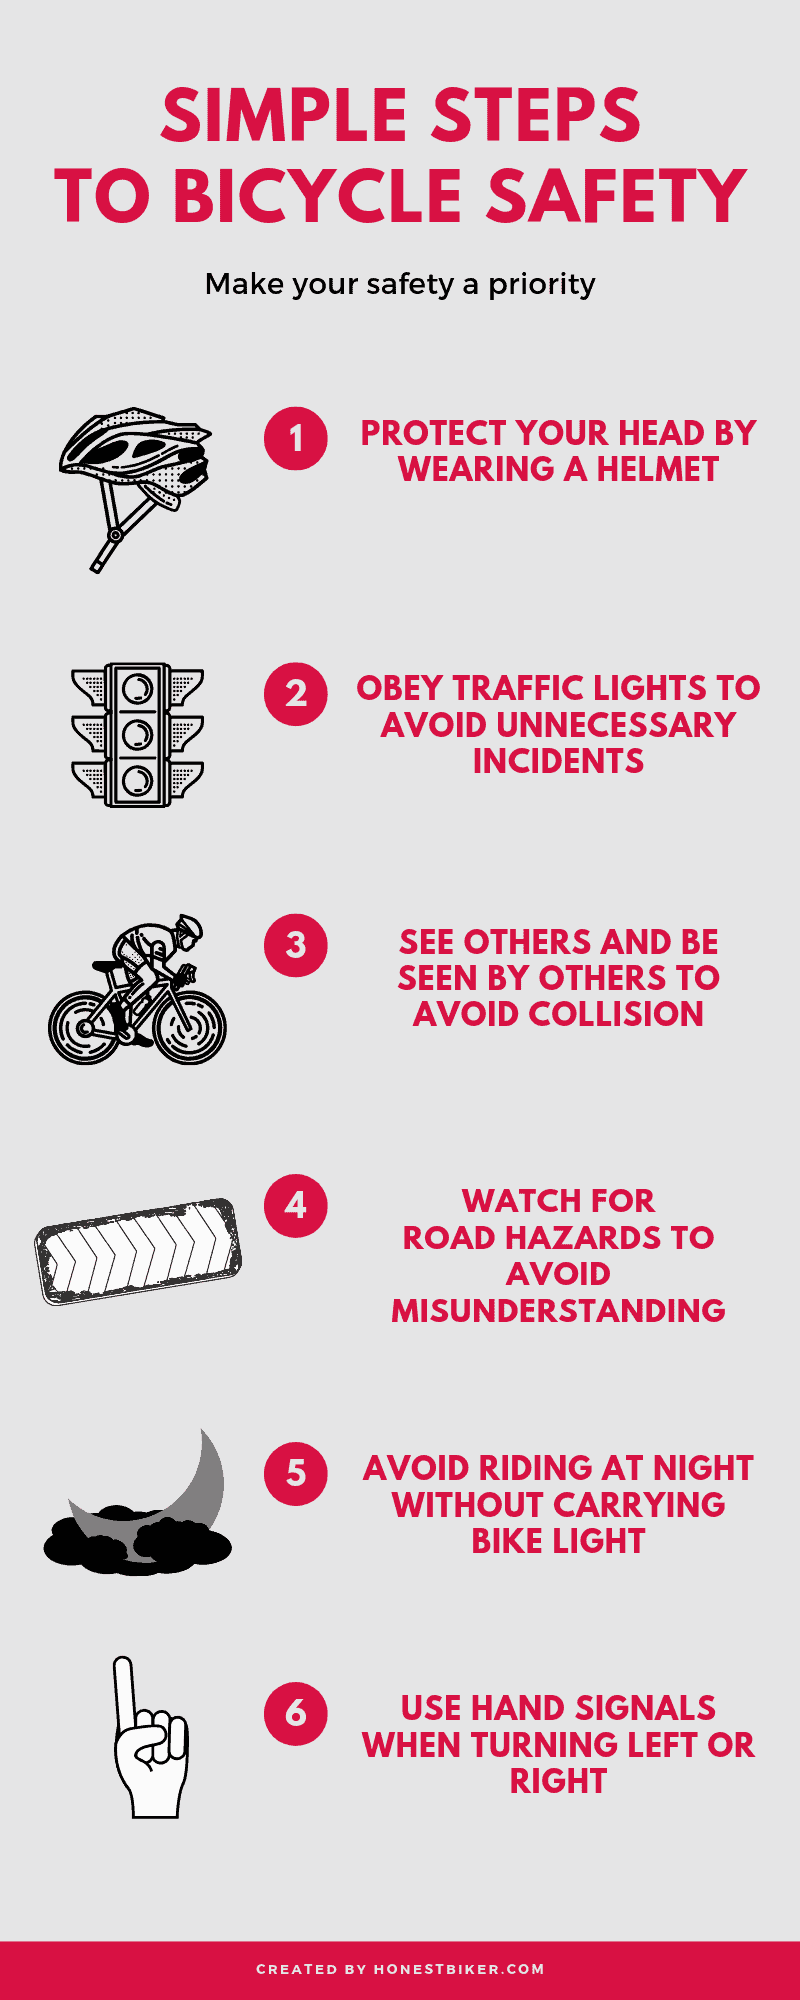 Top Mountain Bikes >> Simple Bike Safety Tips On Infographic - [Beginner Guides]